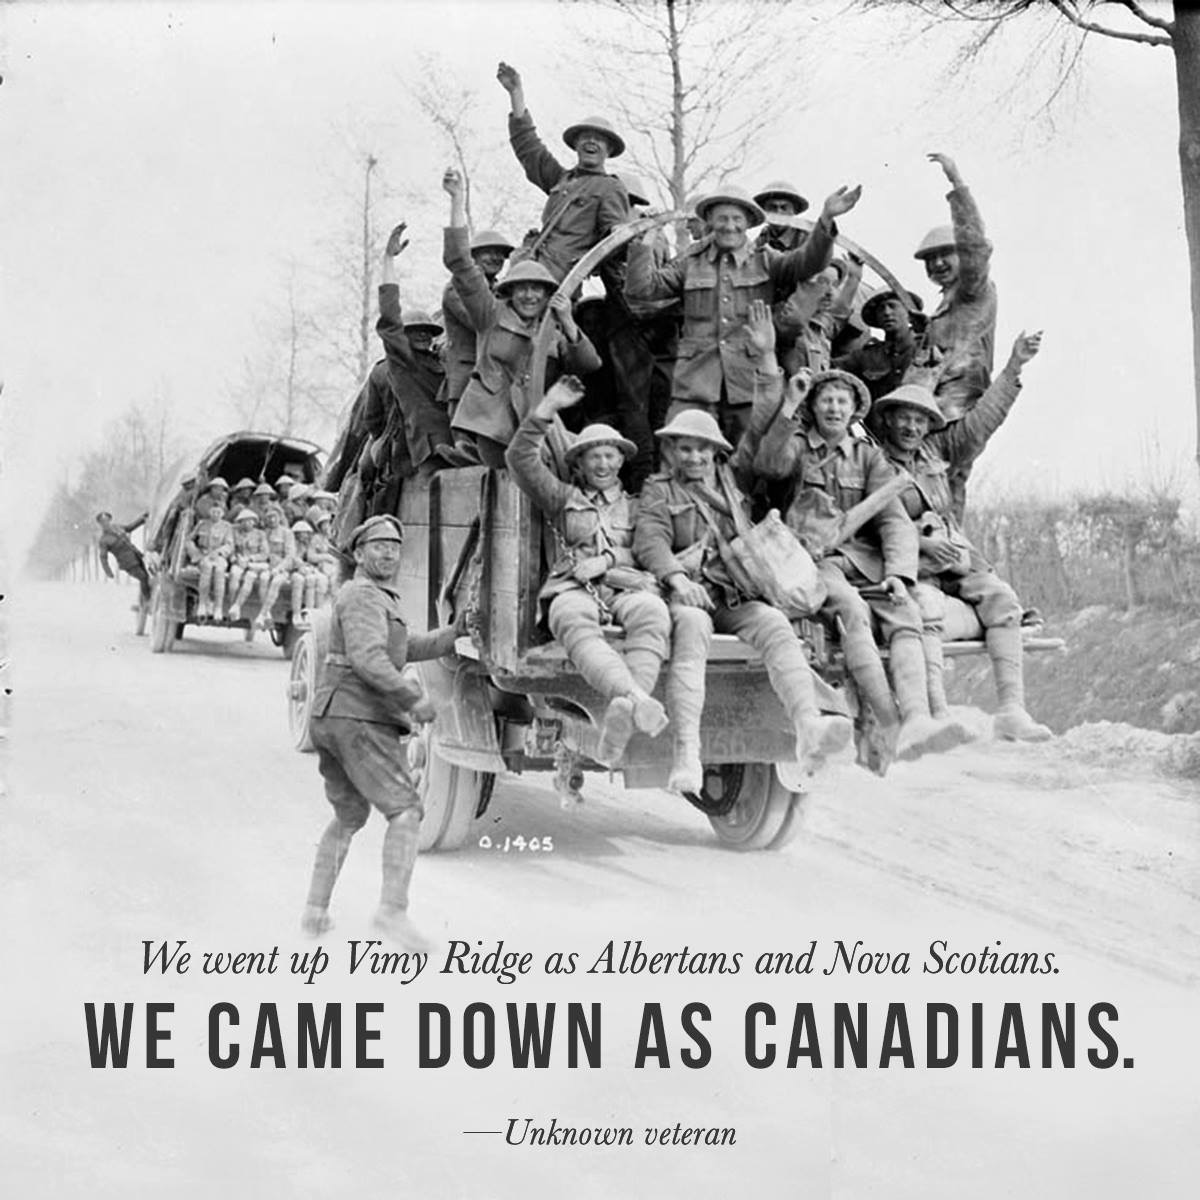 an overview of the battle of vimy ridge in the canadian history The battle of vimy ridge was not the biggest victory of the first world war, but it marked a seminal moment in canadian history, experts agree.